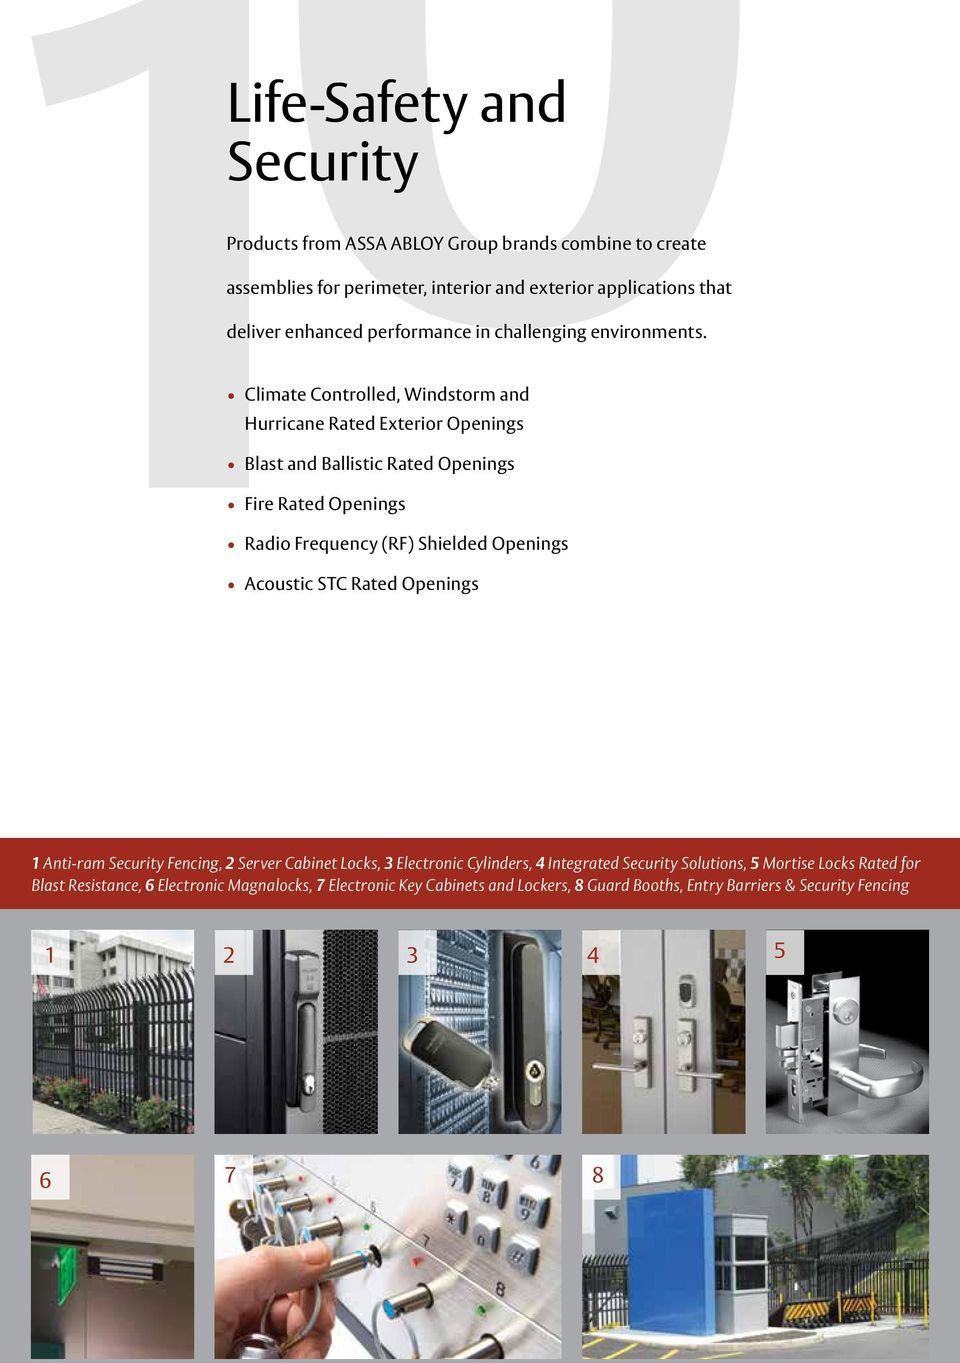 Climate Controlled, Windstorm and Hurricane Rated Exterior Openings Blast and Ballistic Rated Openings Fire Rated Openings Radio Frequency (RF) Shielded Openings